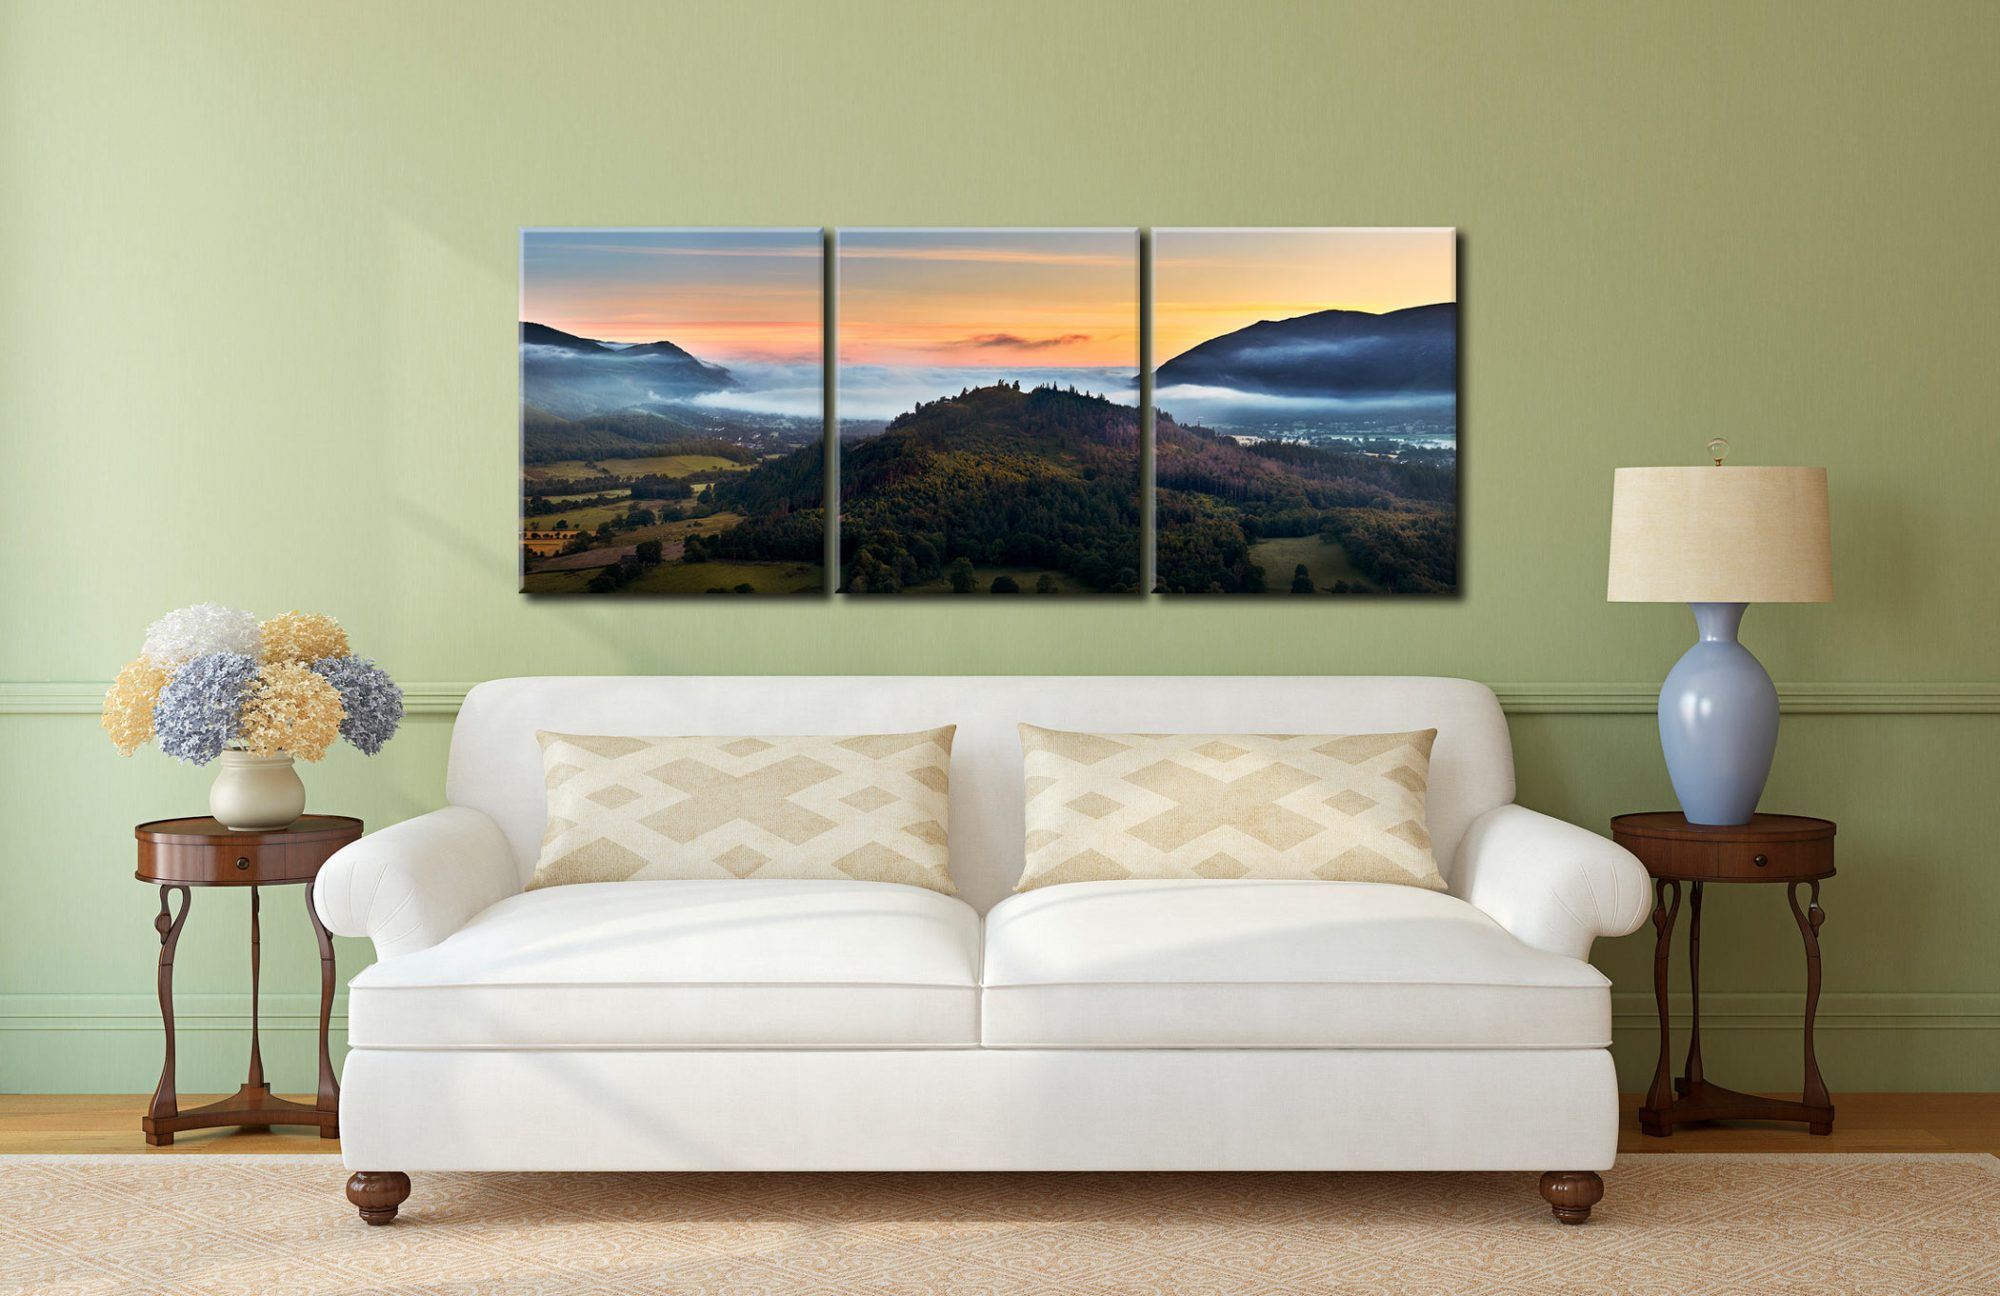 Dawn Mists Over Bassenthwaite Lake  - 3 Panel Canvas on Wall